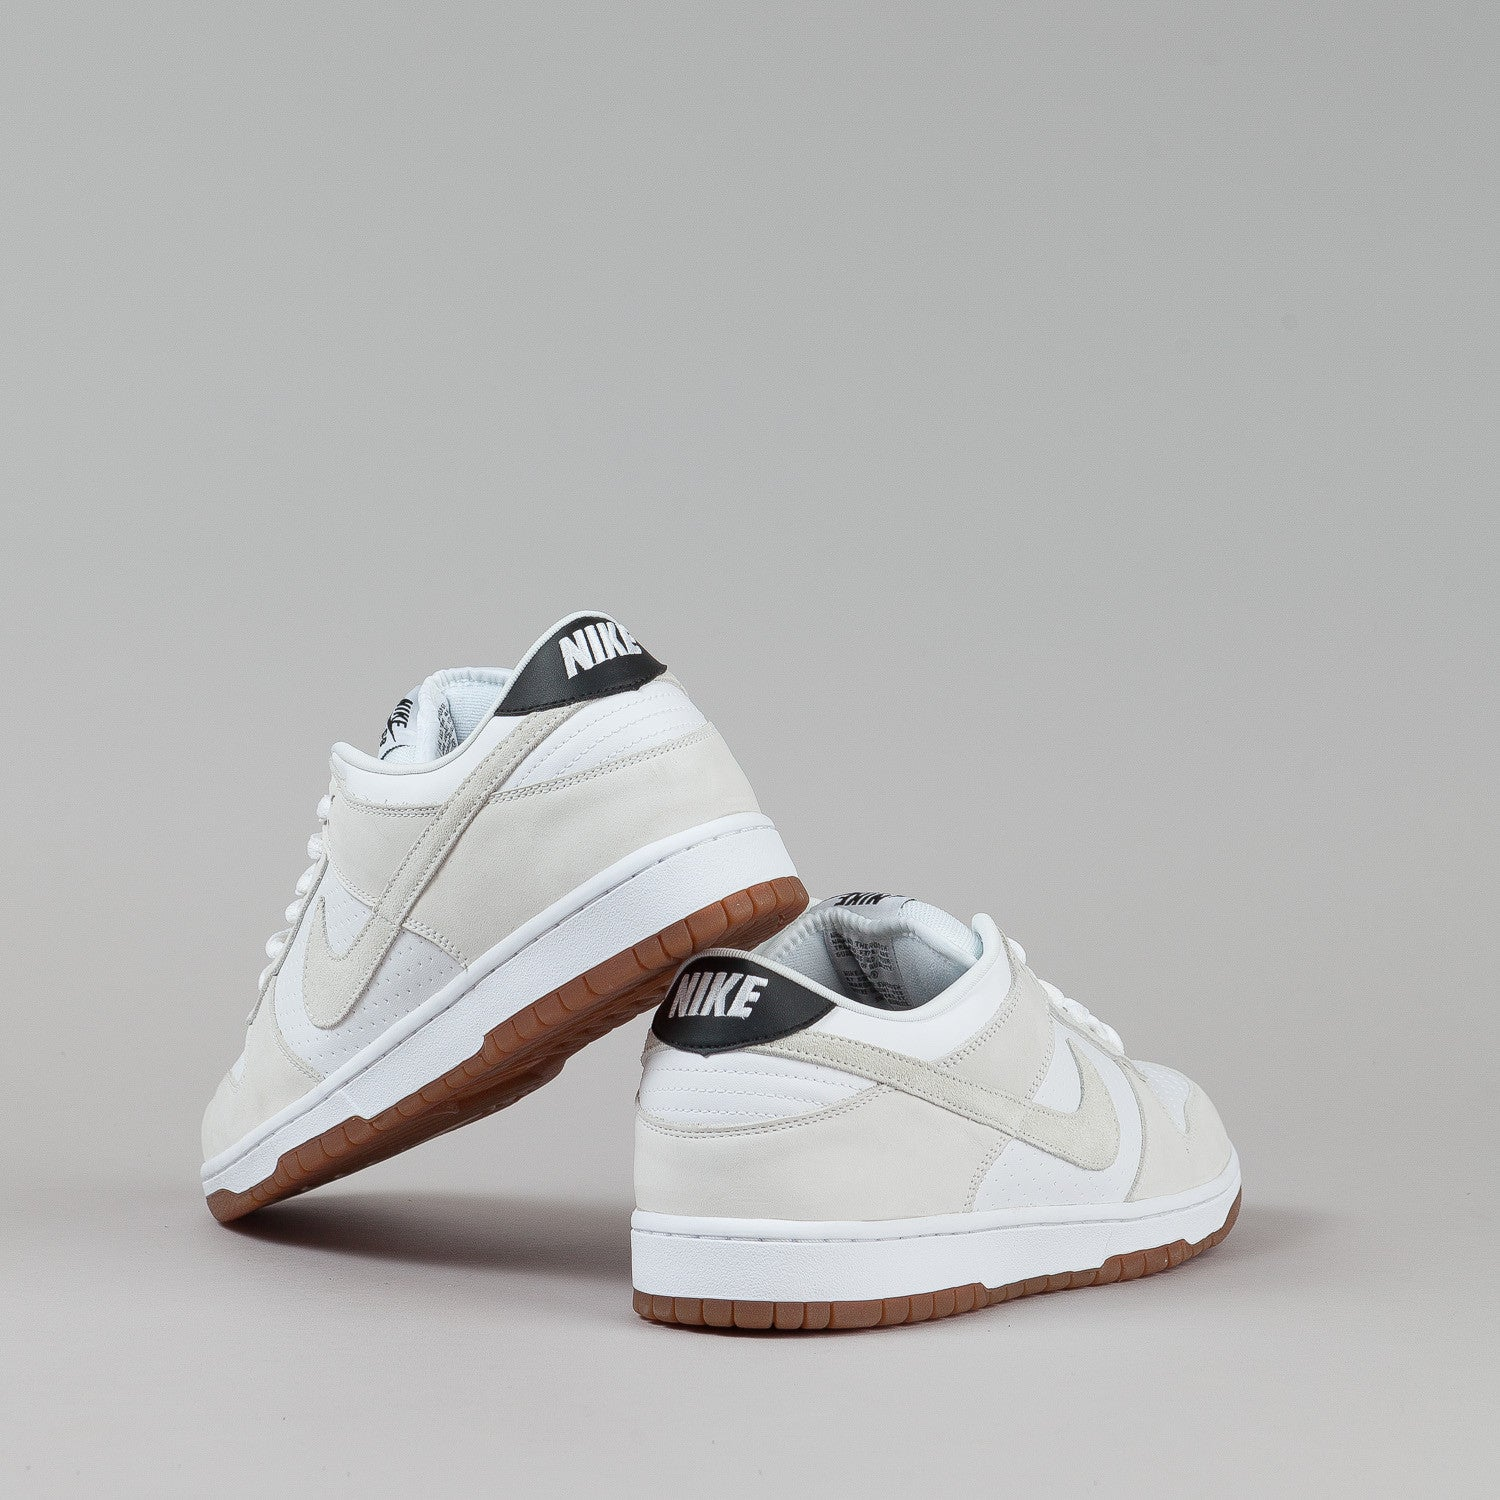 Nike SB Dunk Low Premium Shoes - White / White